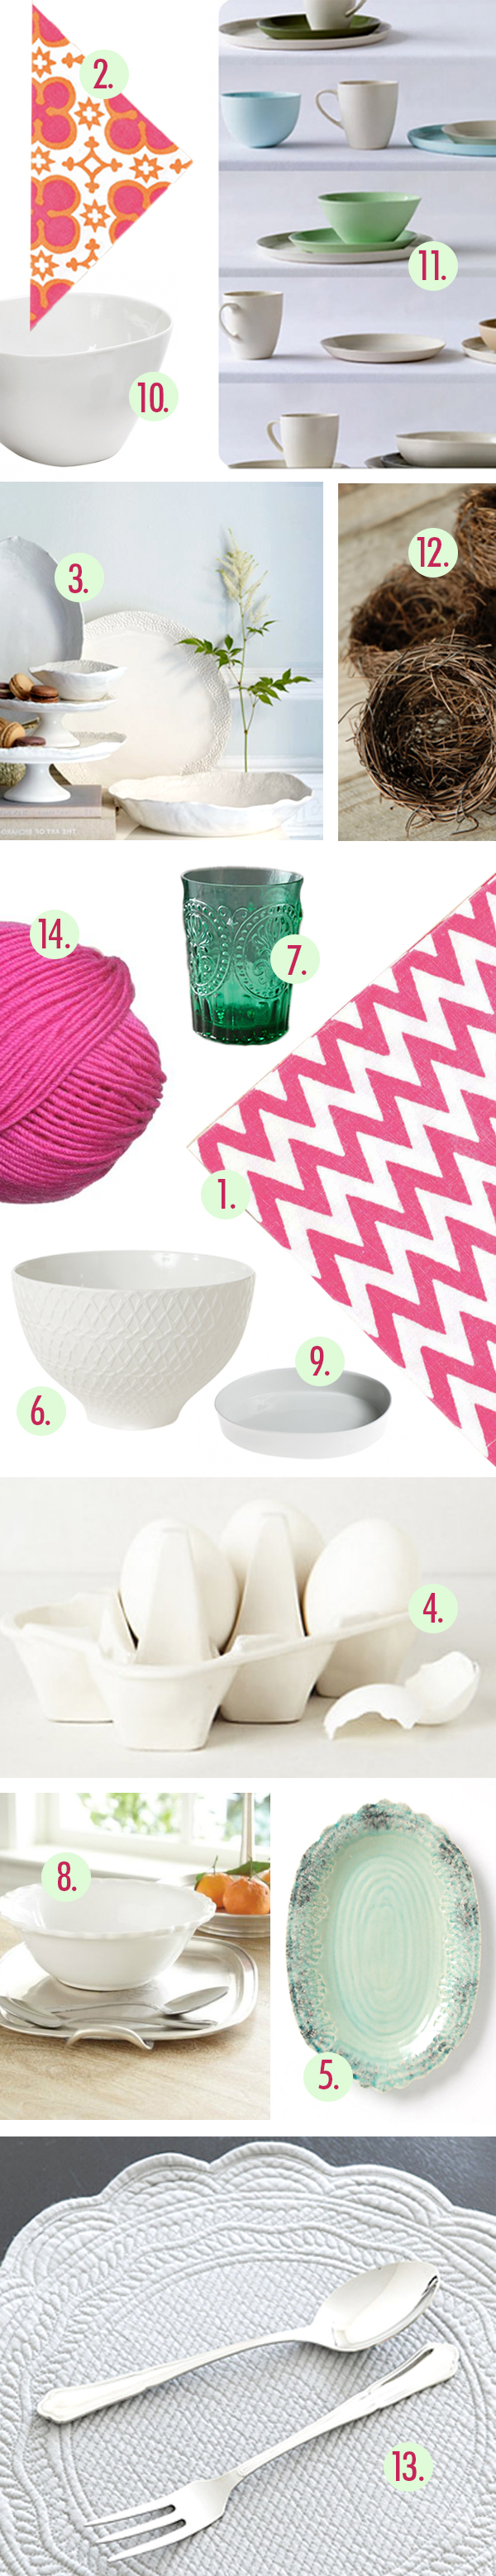 Annette Joseph Table Top Pine Cone Hill Chevron Napkins West Elm Serving dishes Antropologie Dishware Dwell Bowl Bird Nest Egg Crates Fuchsia Yarn